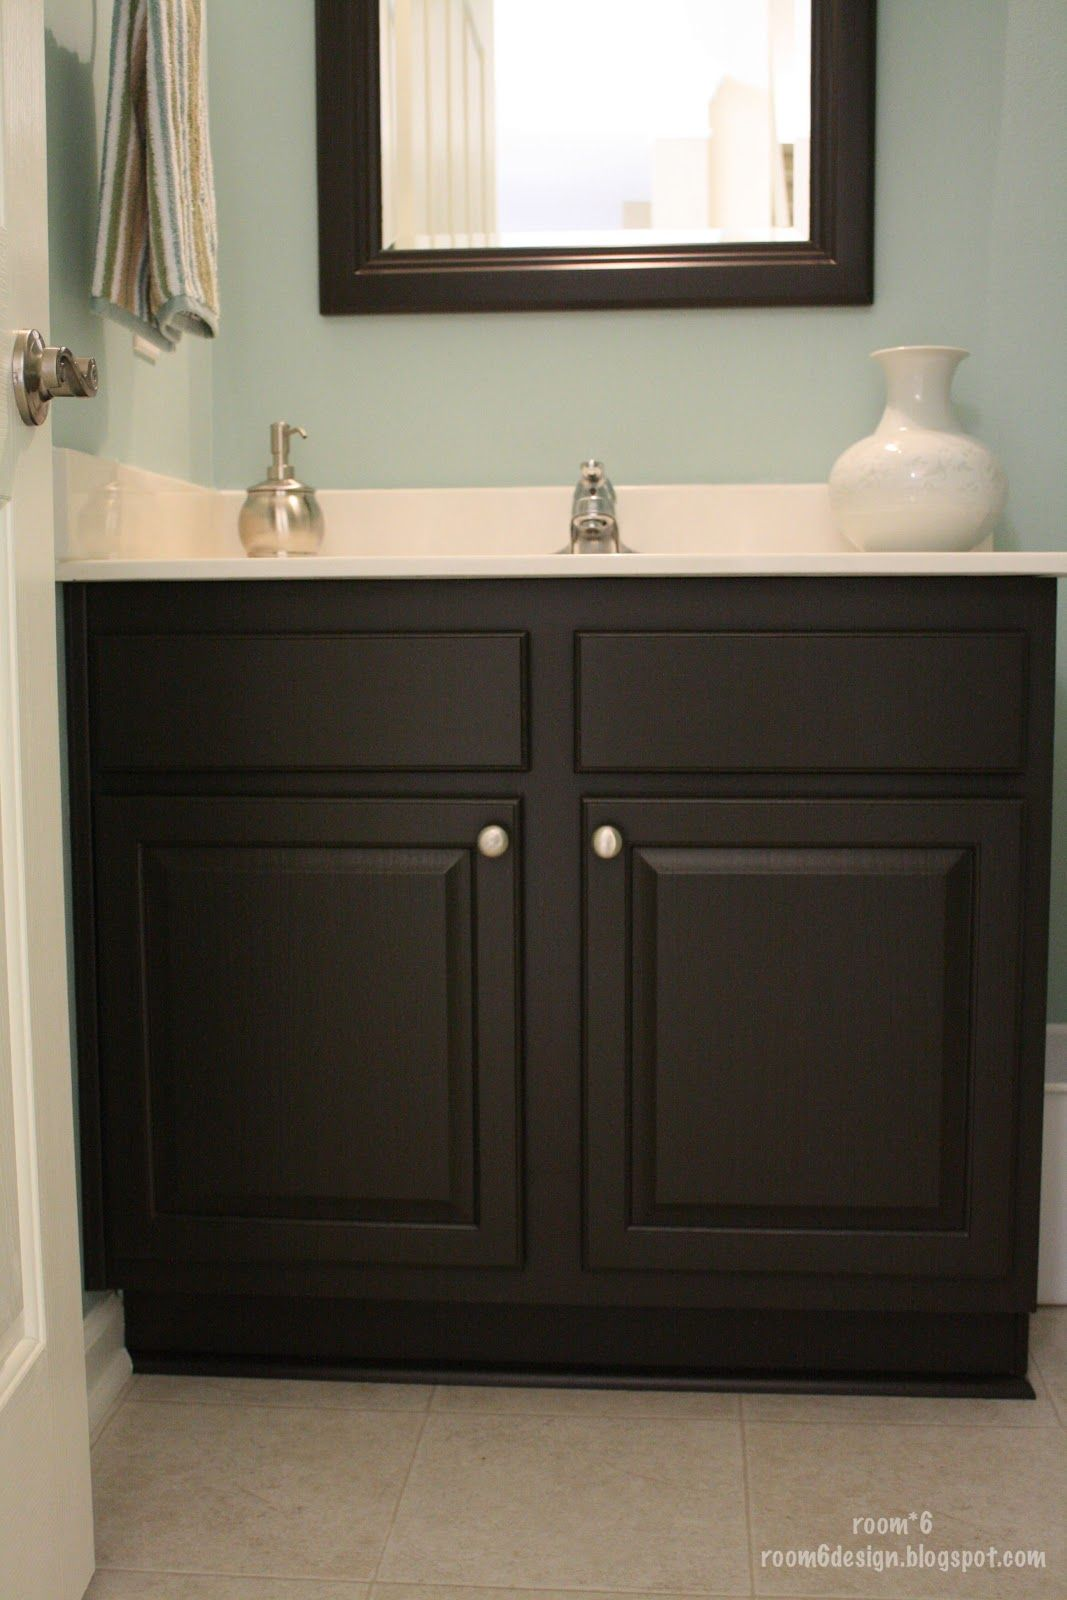 Oh I Want To Paint Our Bathroom Cabinet For The Home: paint bathroom cabinets